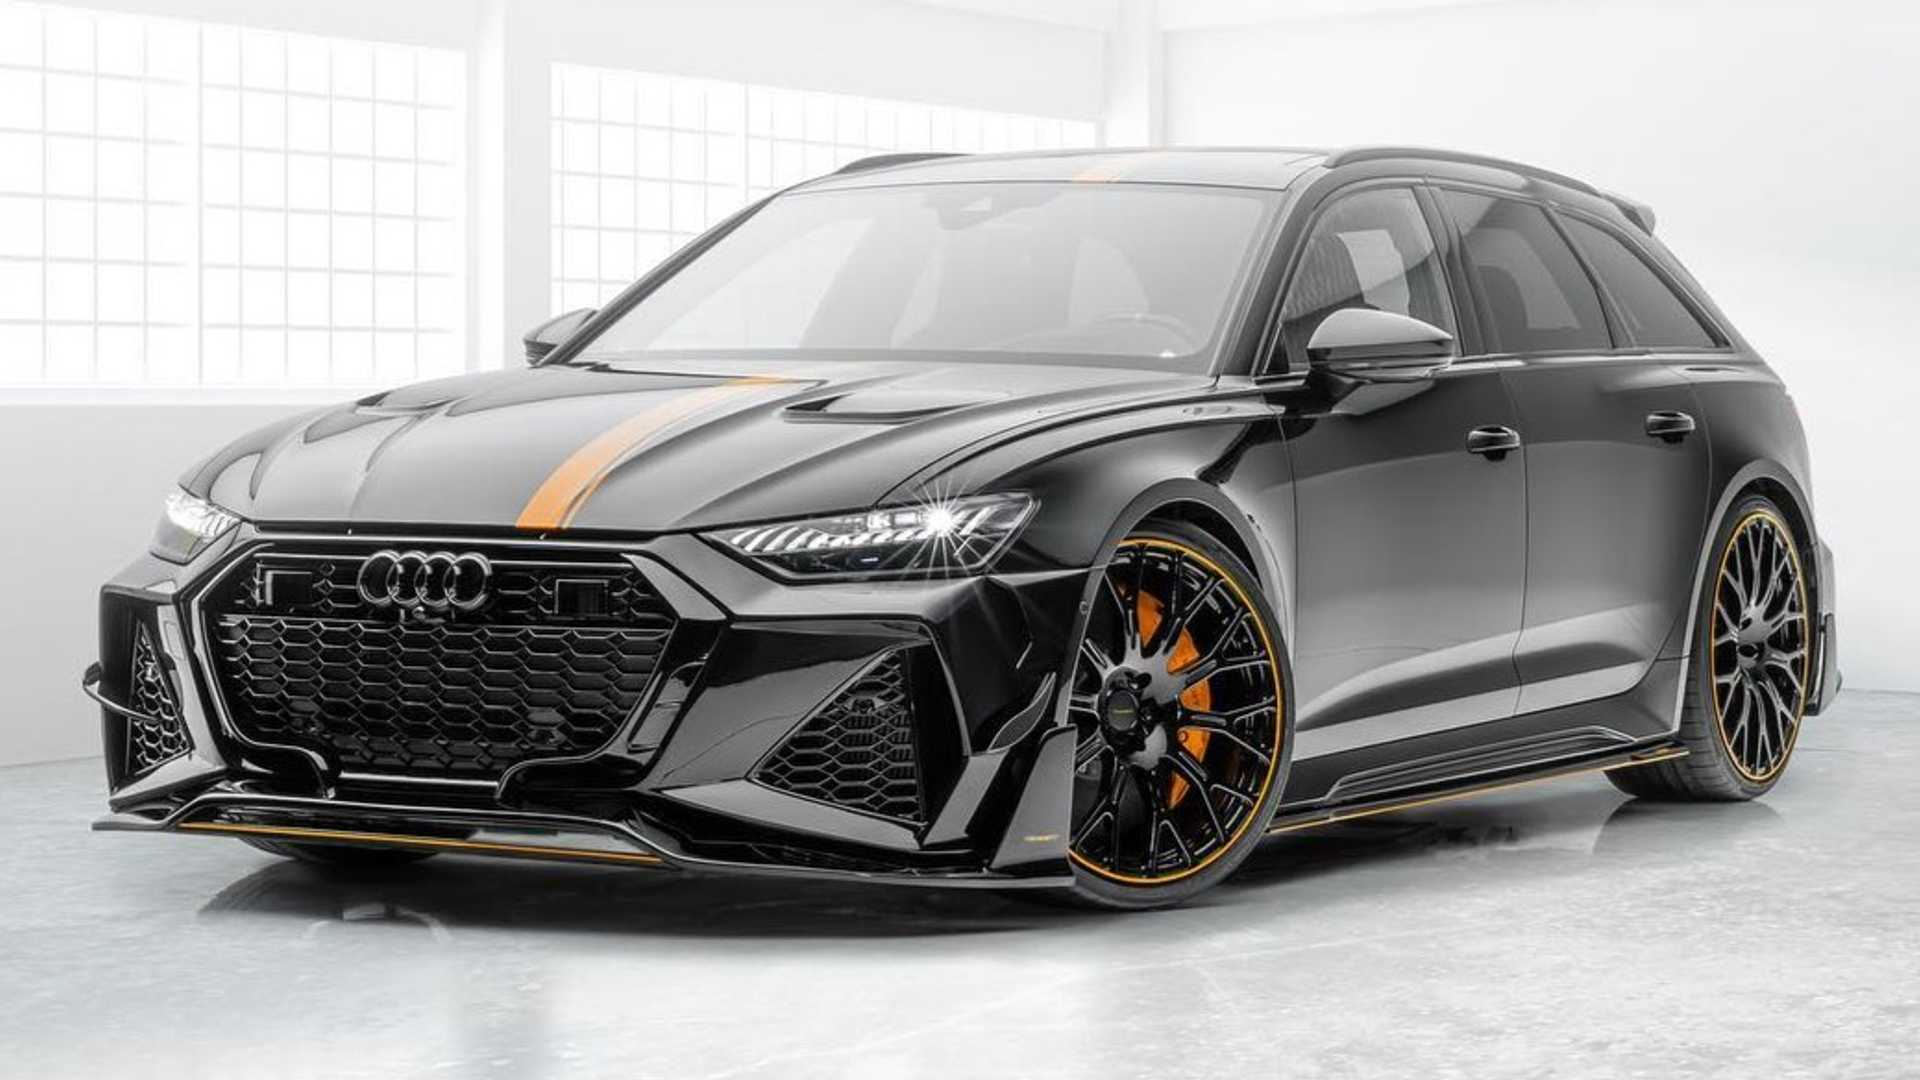 2021 Audi Rs6 Avant By Mansory Is An Extravagant Super Estate